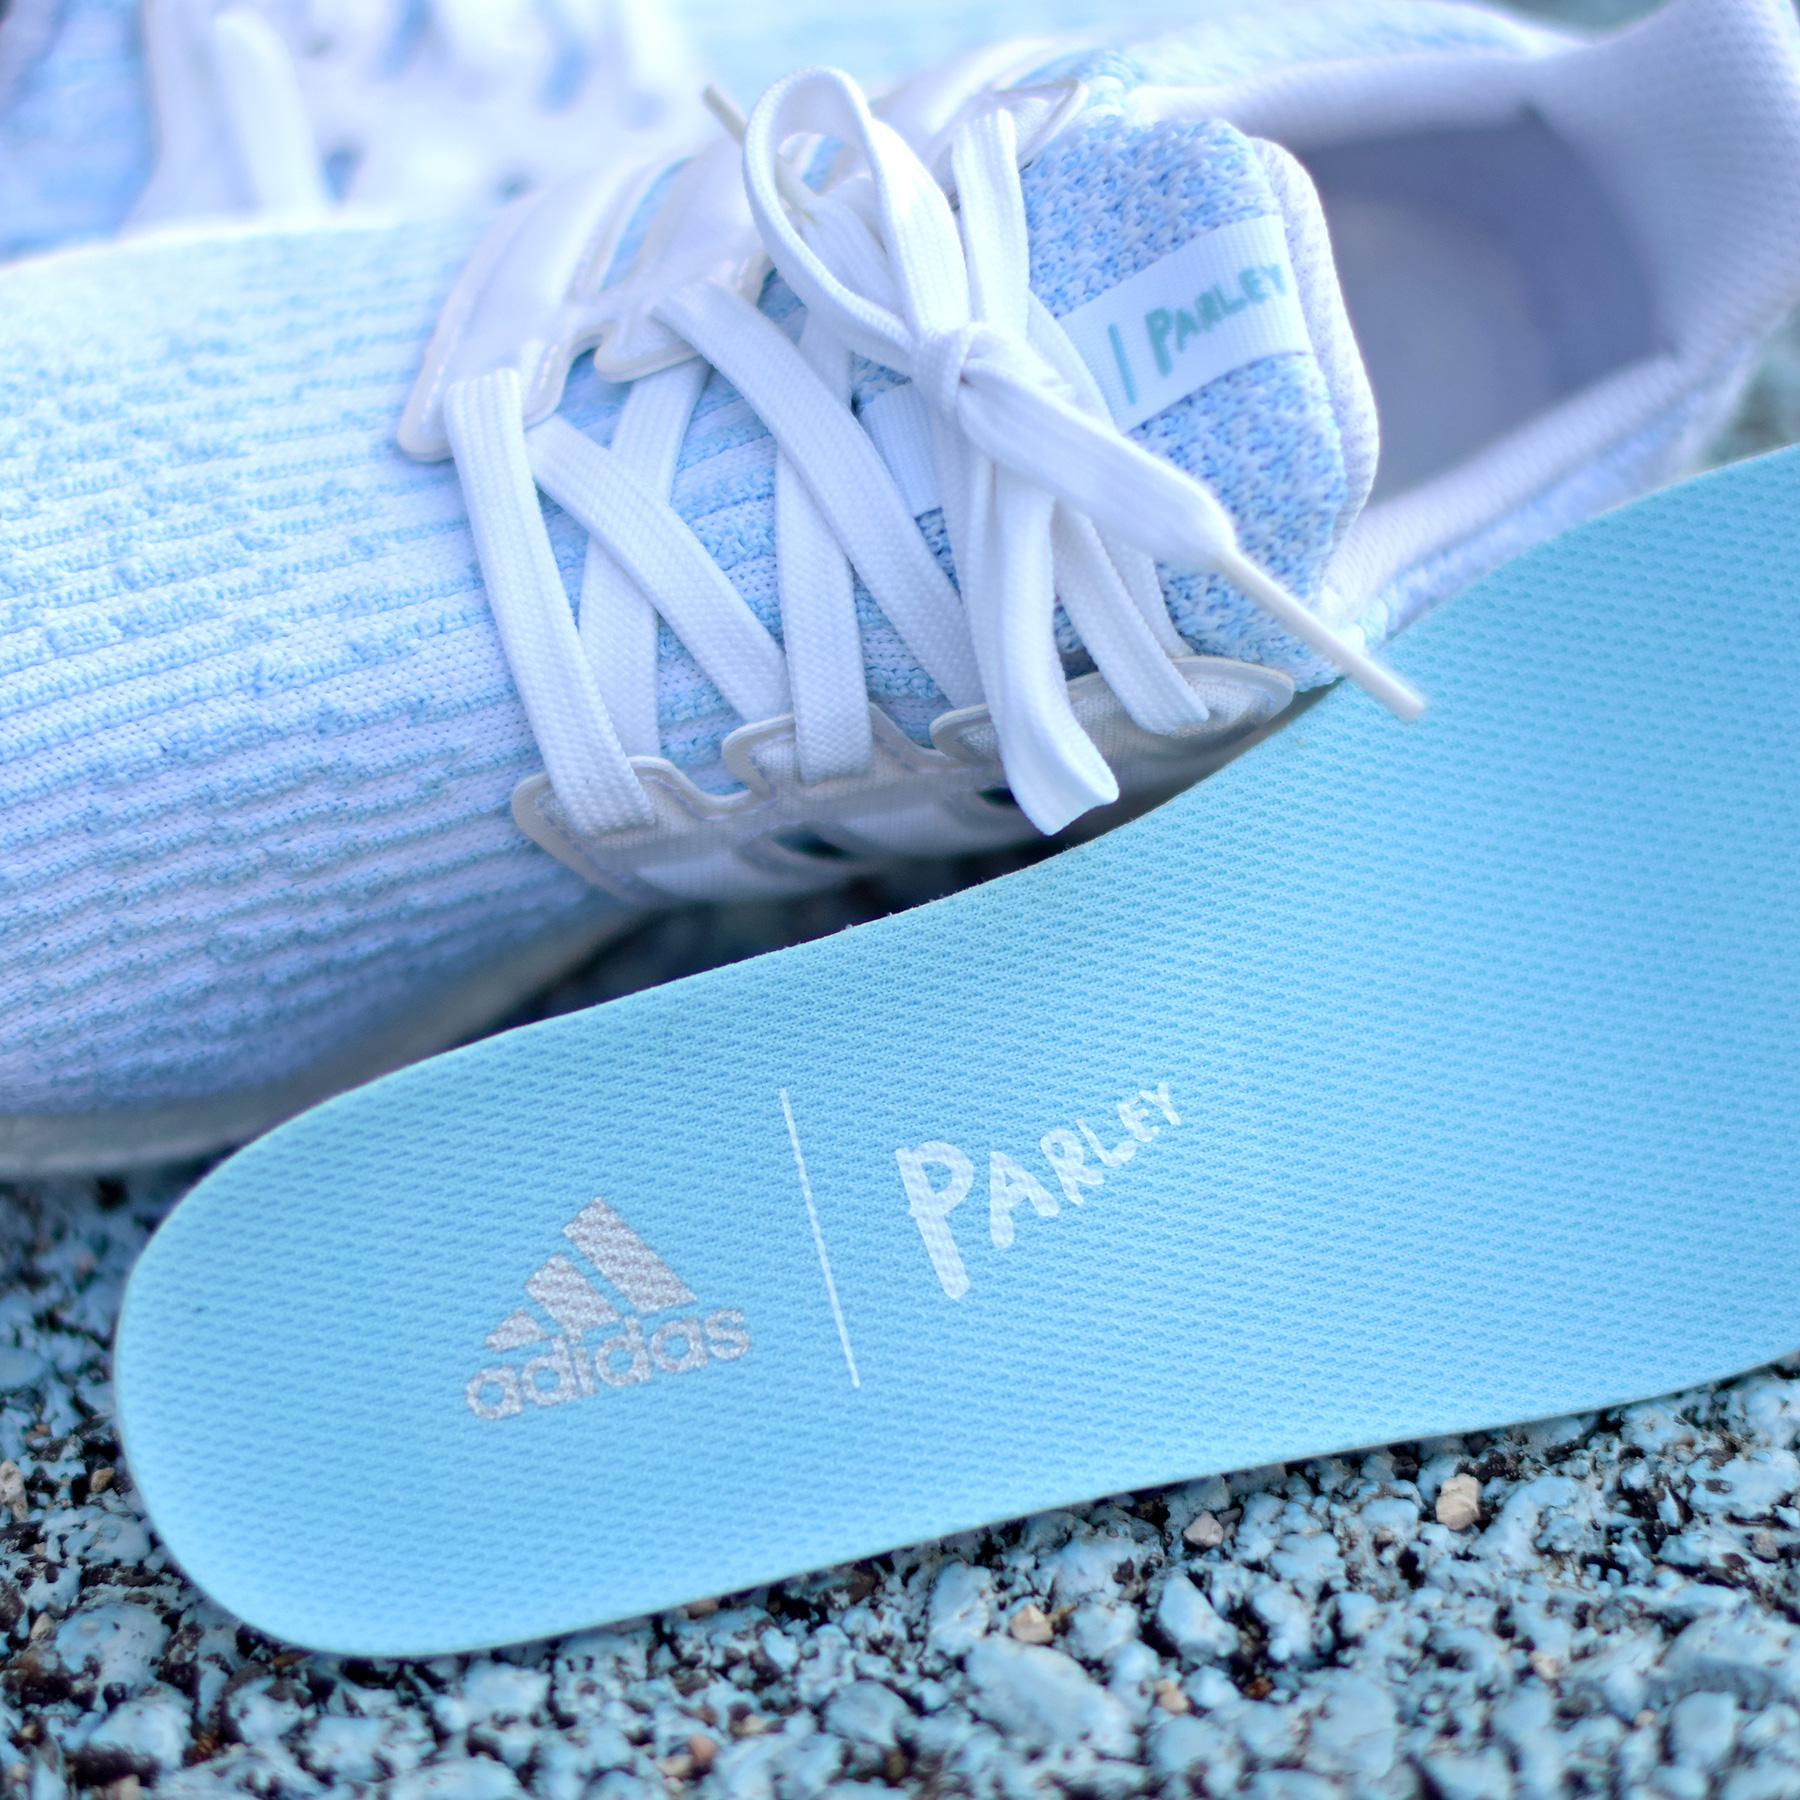 c222f7759dc37 parley x adidas ultra boost 3.0 coral bleaching cp9685 photo 4 5  adidas  kicks off court runners